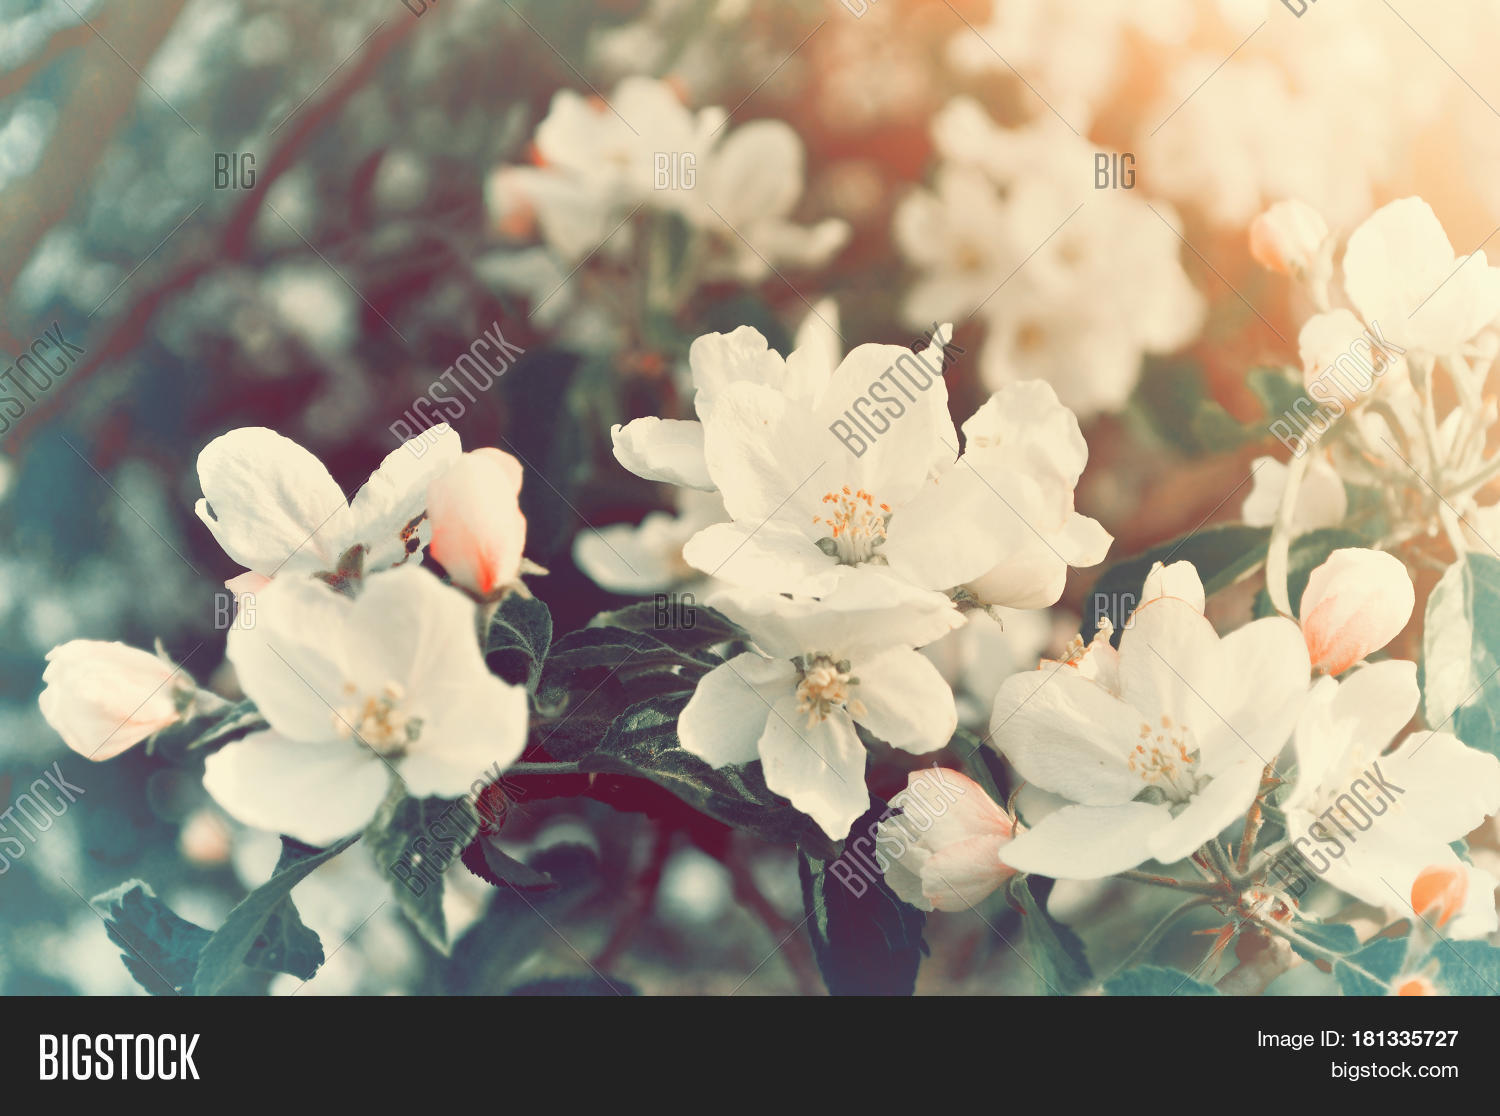 Spring Blooming Apple Image Photo Free Trial Bigstock